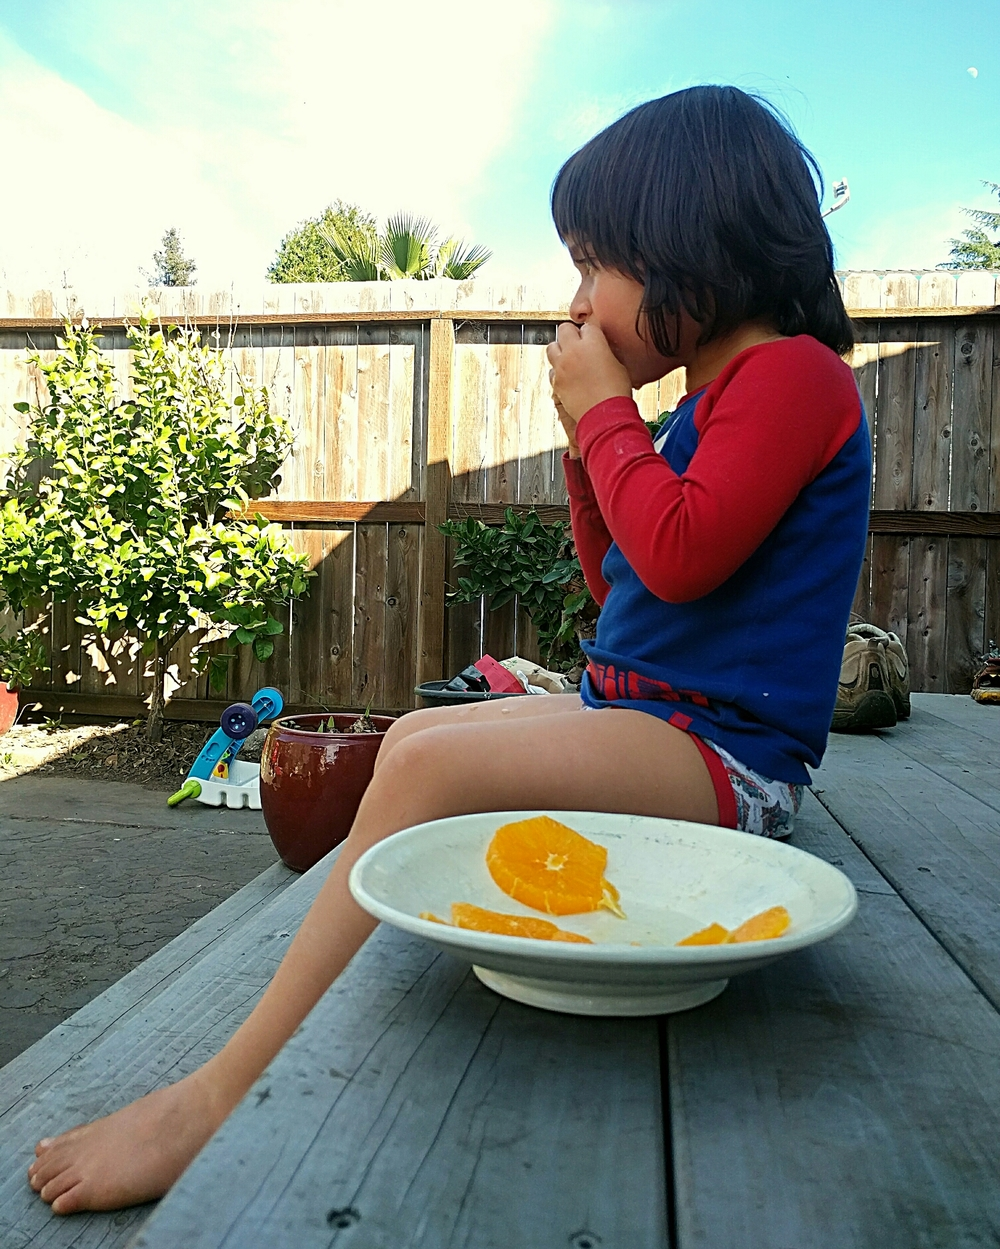 So warm Kamal decided he'd eat his orange outside. In his underpants.